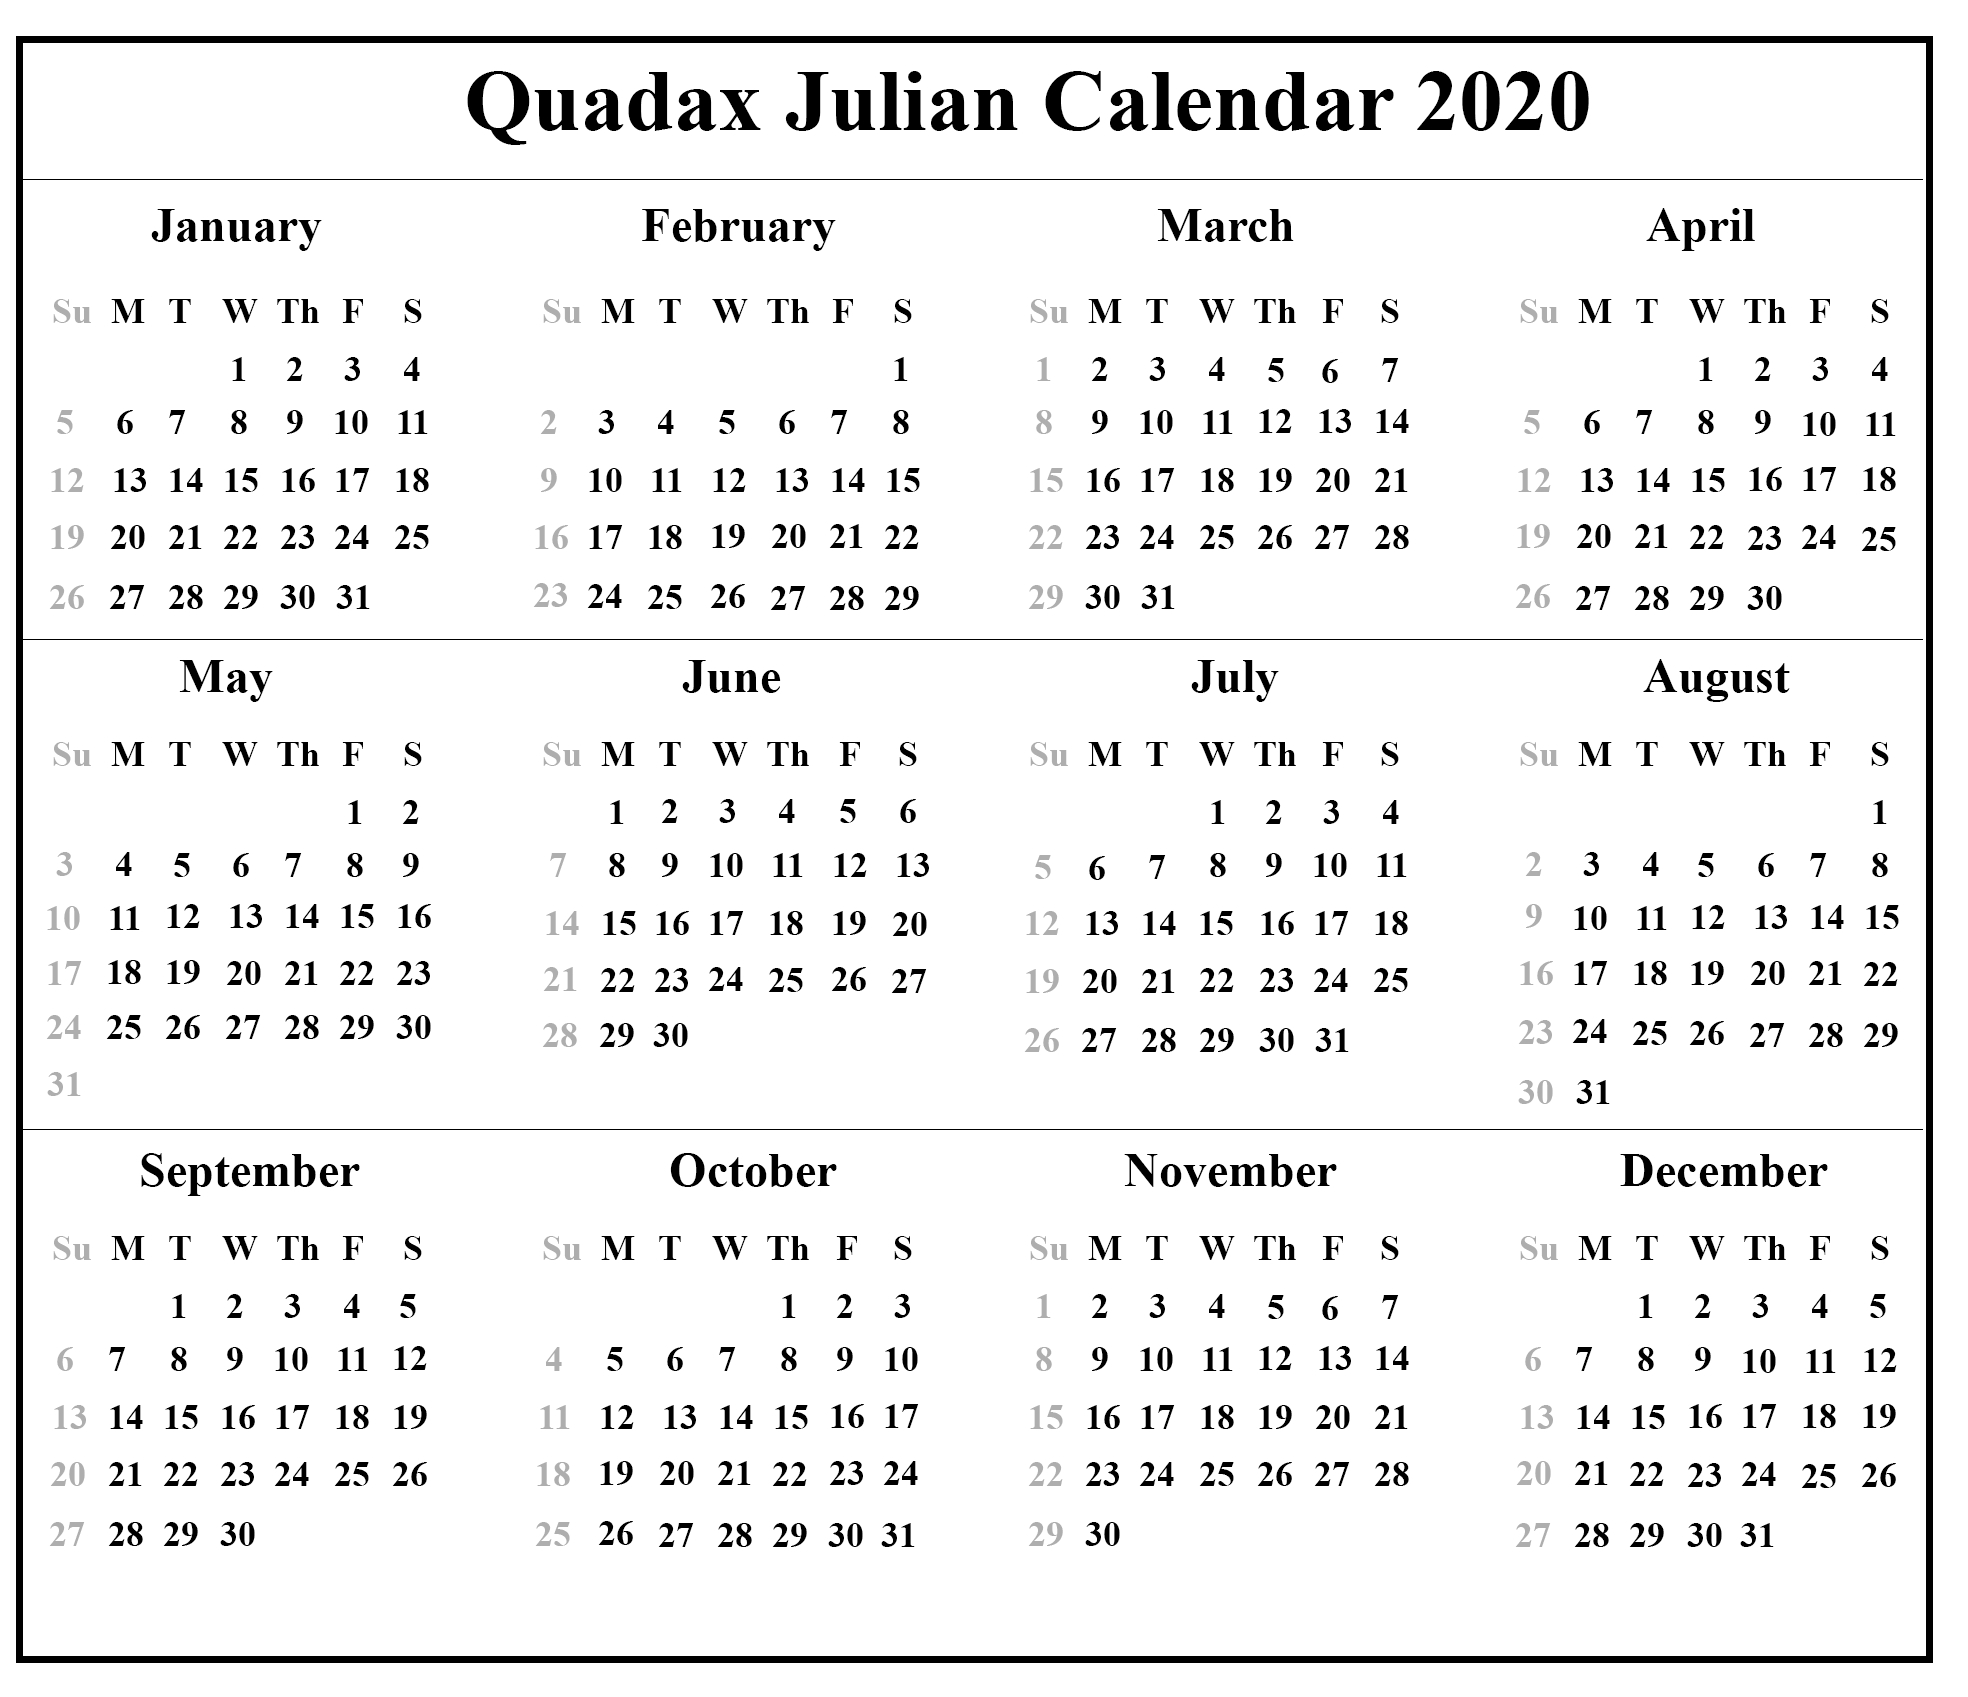 Free Printable Julian Calendar 2020 Template | Printable